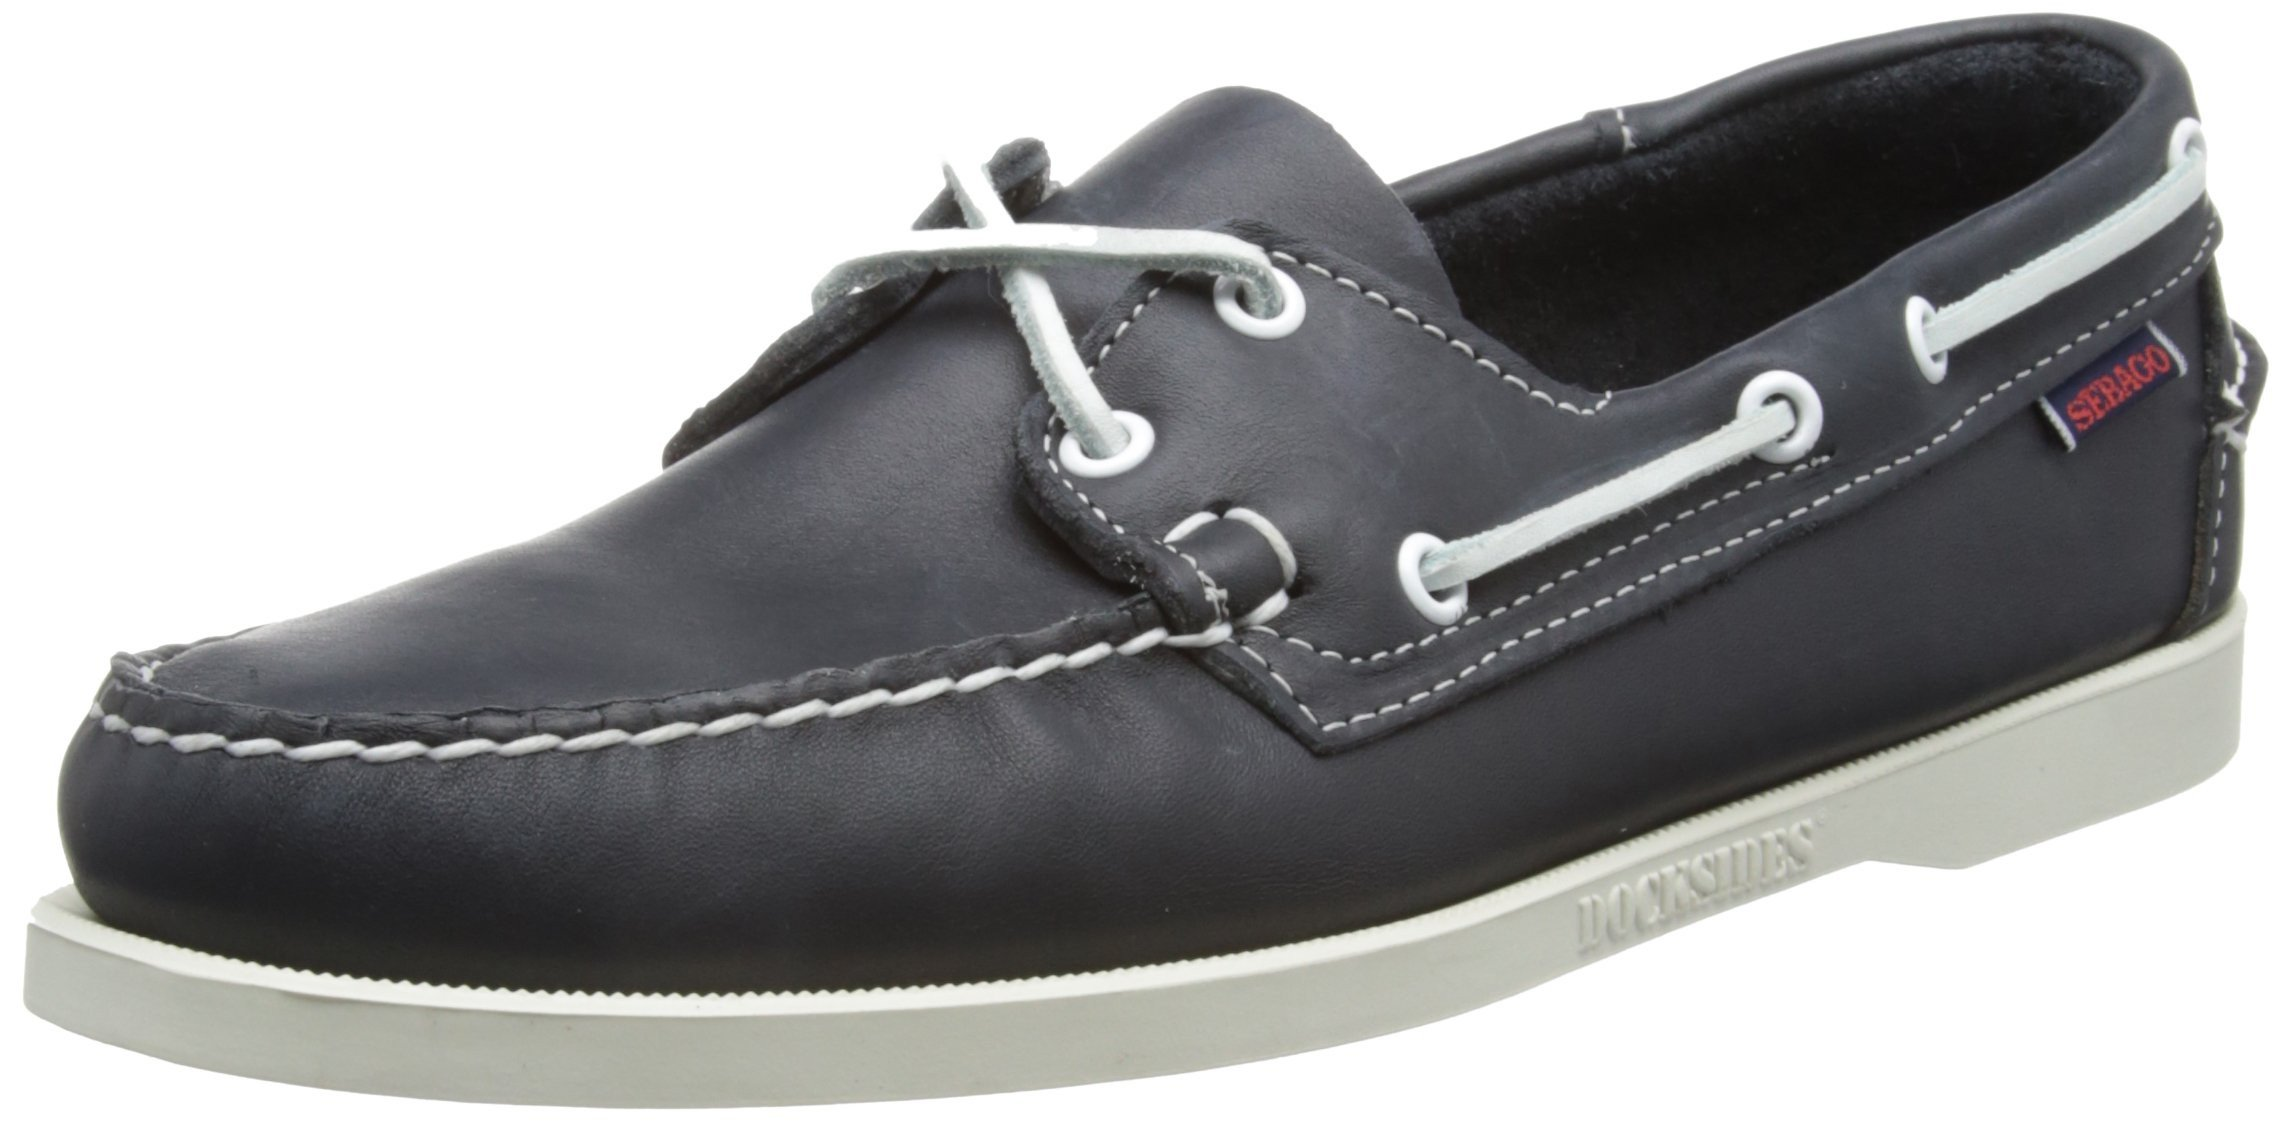 Sebago Mens Docksides Leather Boat Shoes in Blue Nite by DAWN LEVY